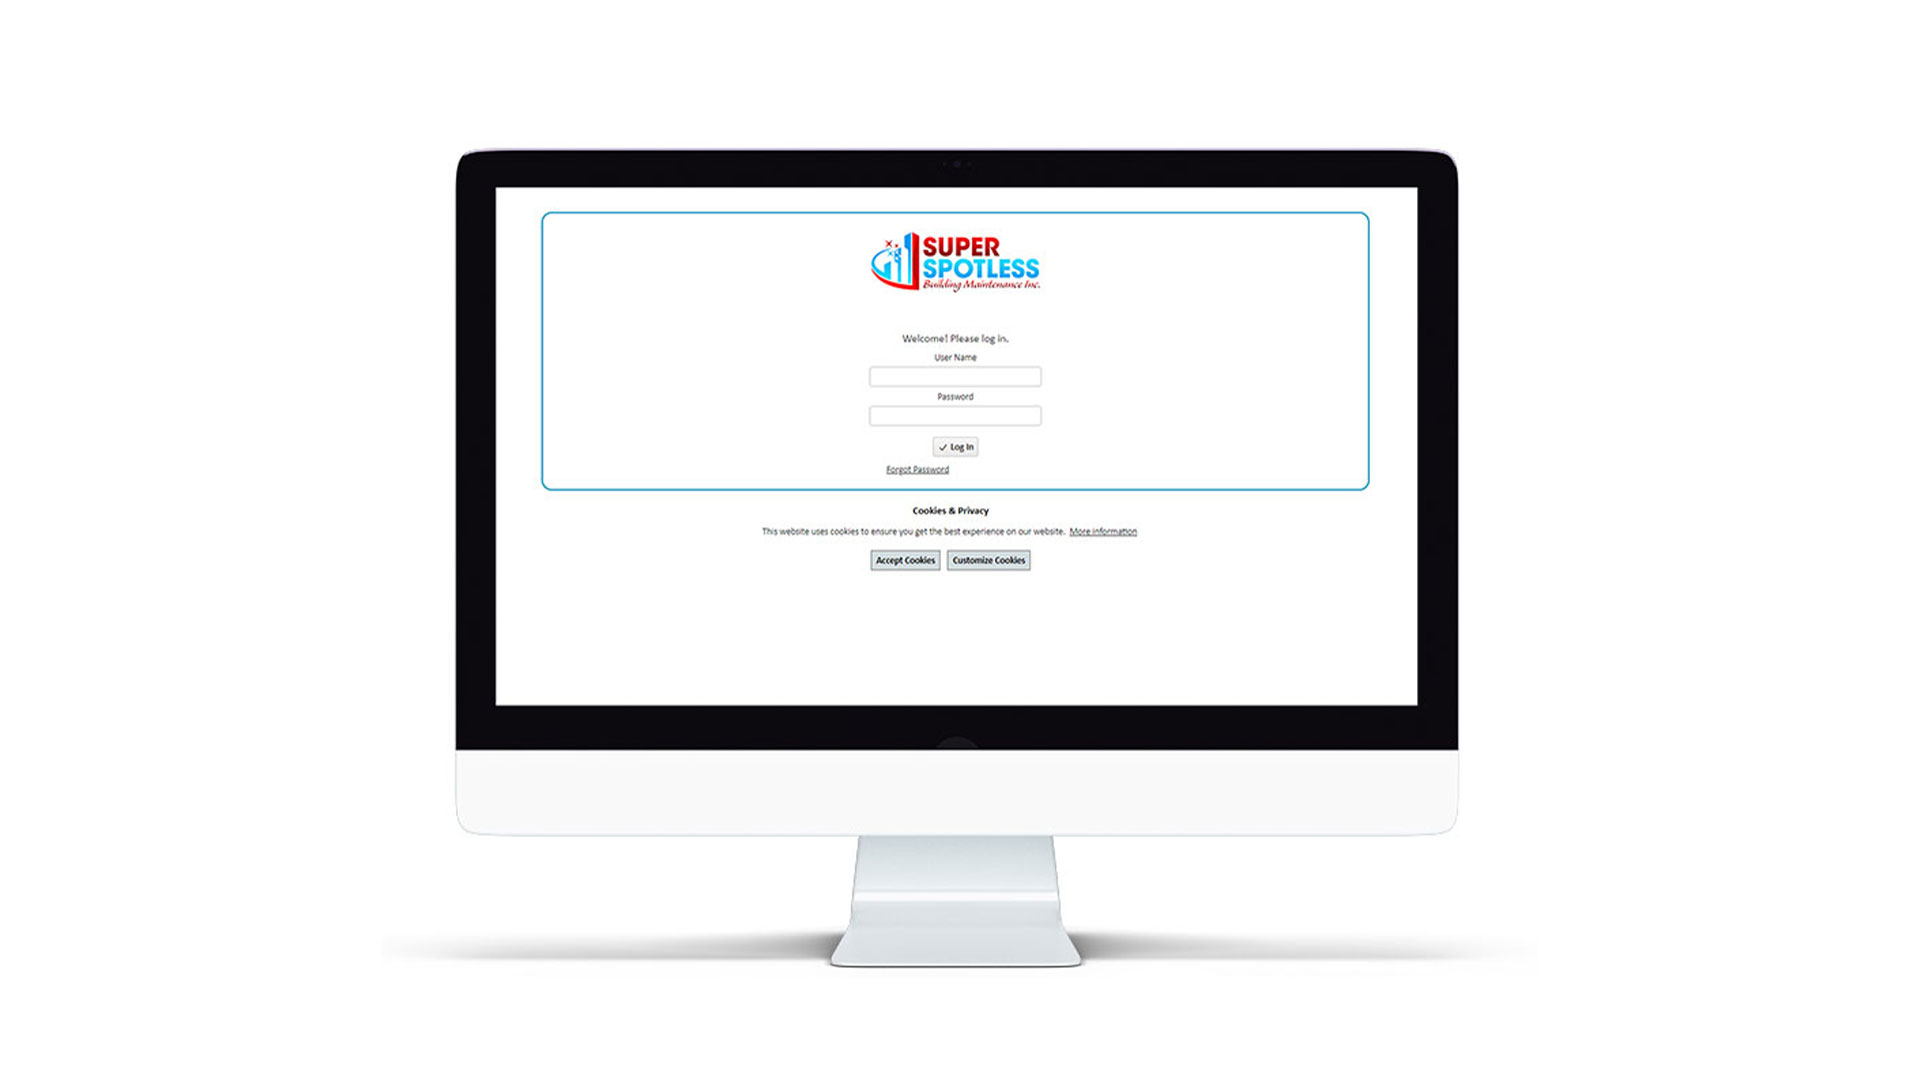 commercial cleaning kelowna penticton vernon kamloops client portal